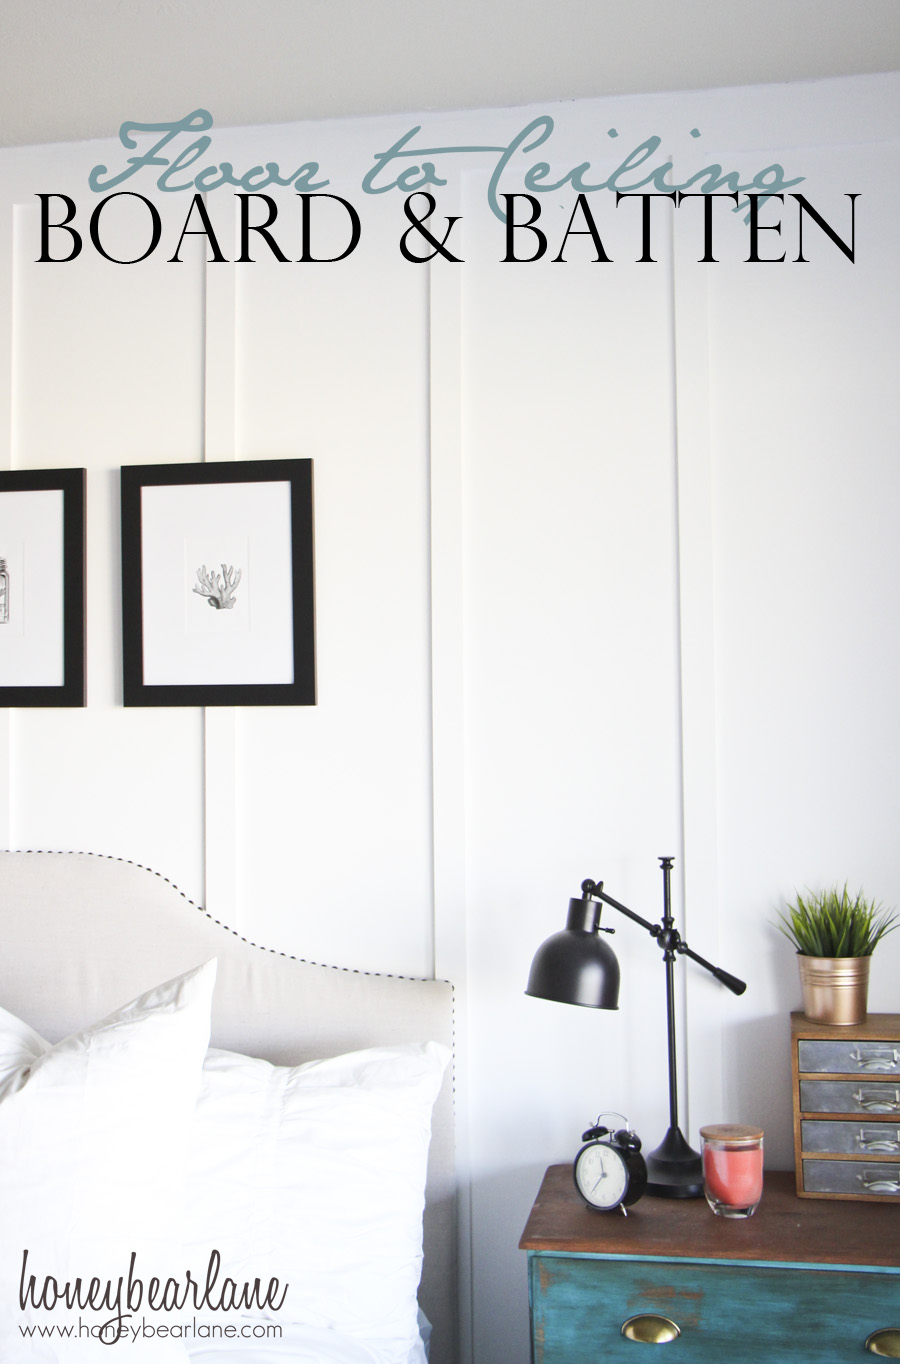 Floor To Ceiling Board And Batten Tutorial Honeybear Lane